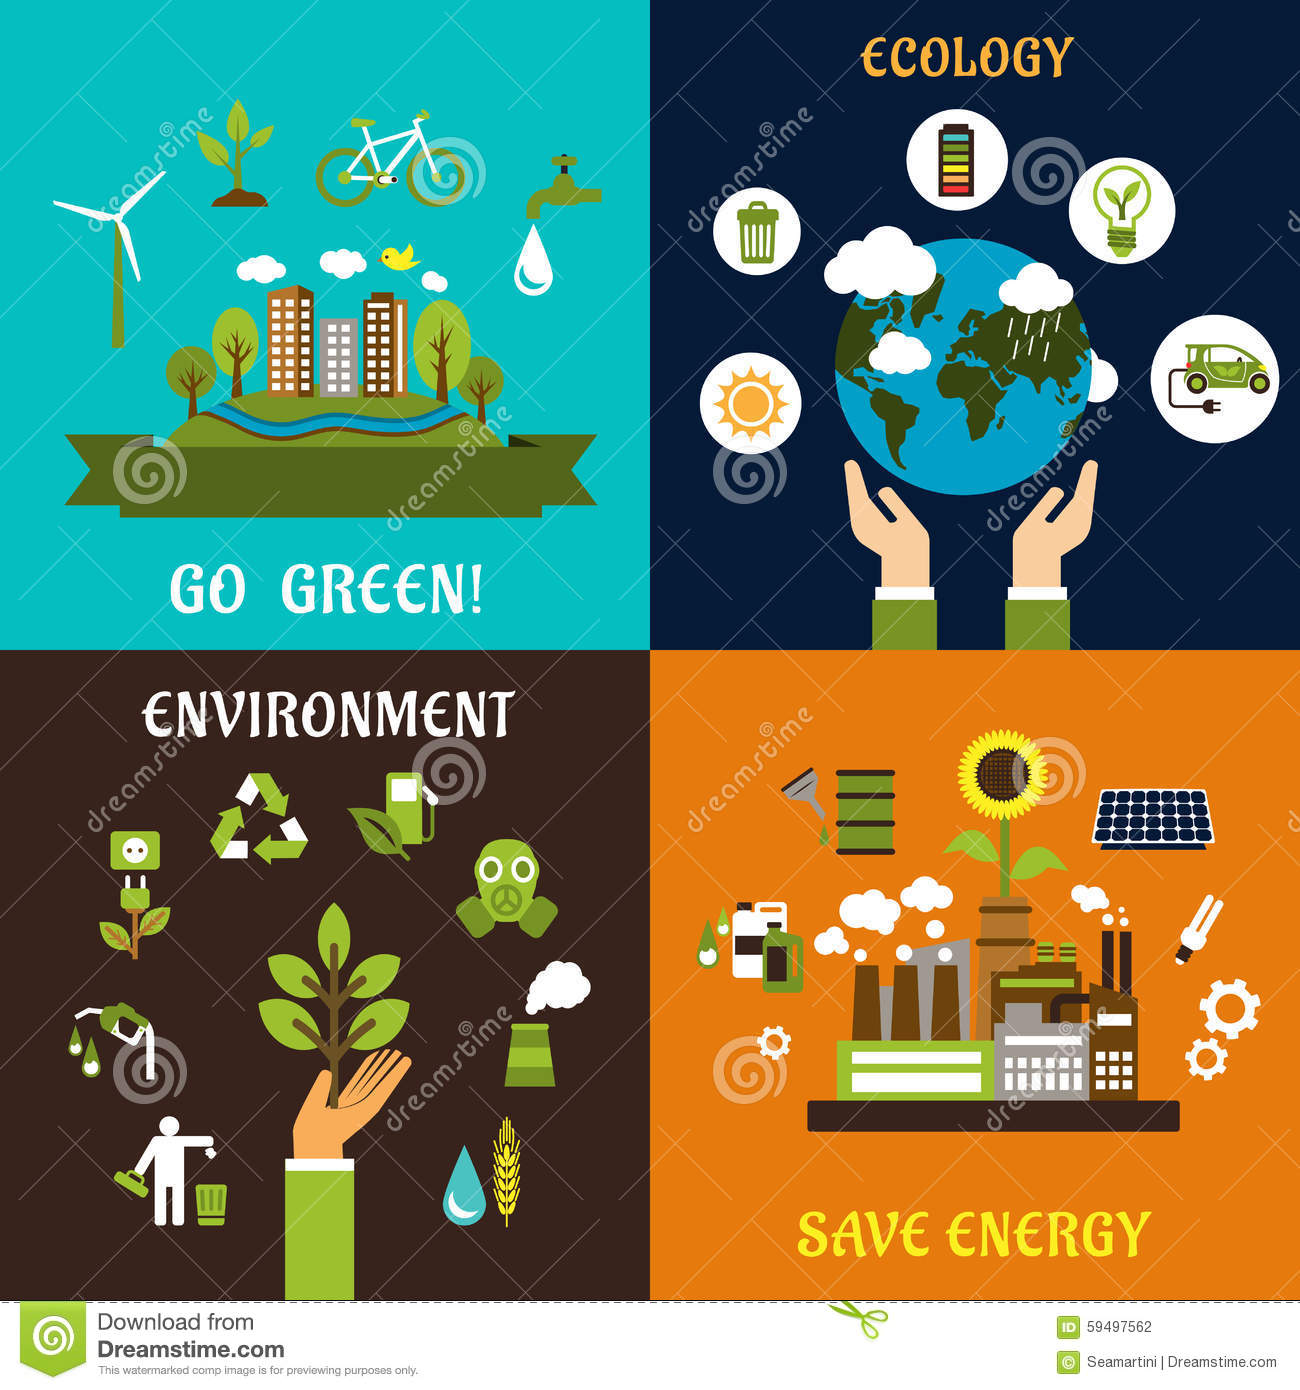 Clipart on save energy save environment png royalty free stock Environment, Ecology And Save Energy Icons Stock Vector - Image ... png royalty free stock